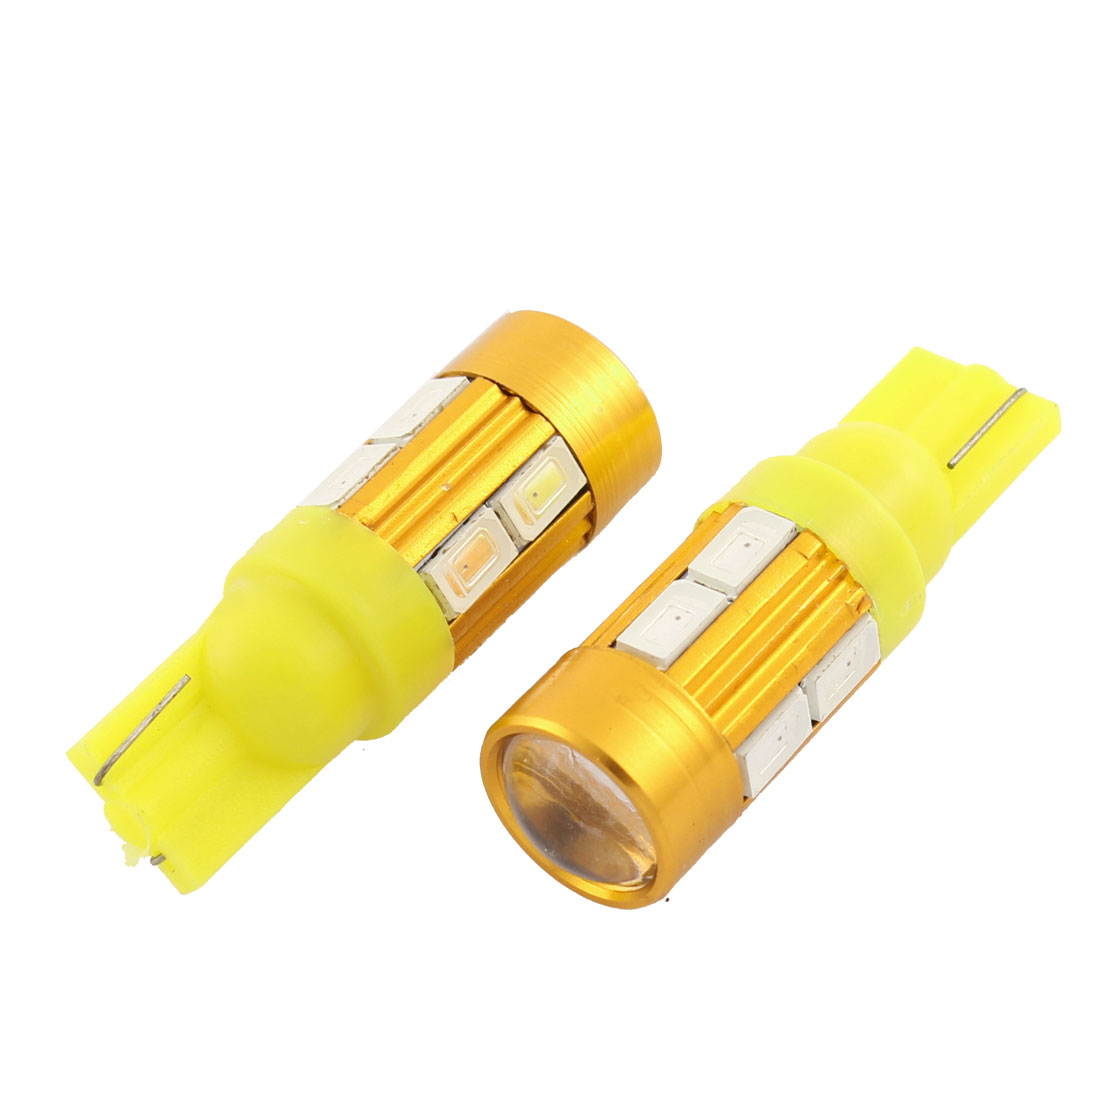 2 Pcs T10 W5W Wedge Yellow 5630 SMD 10 LED Car Dashboard Lamp Bulb Interior